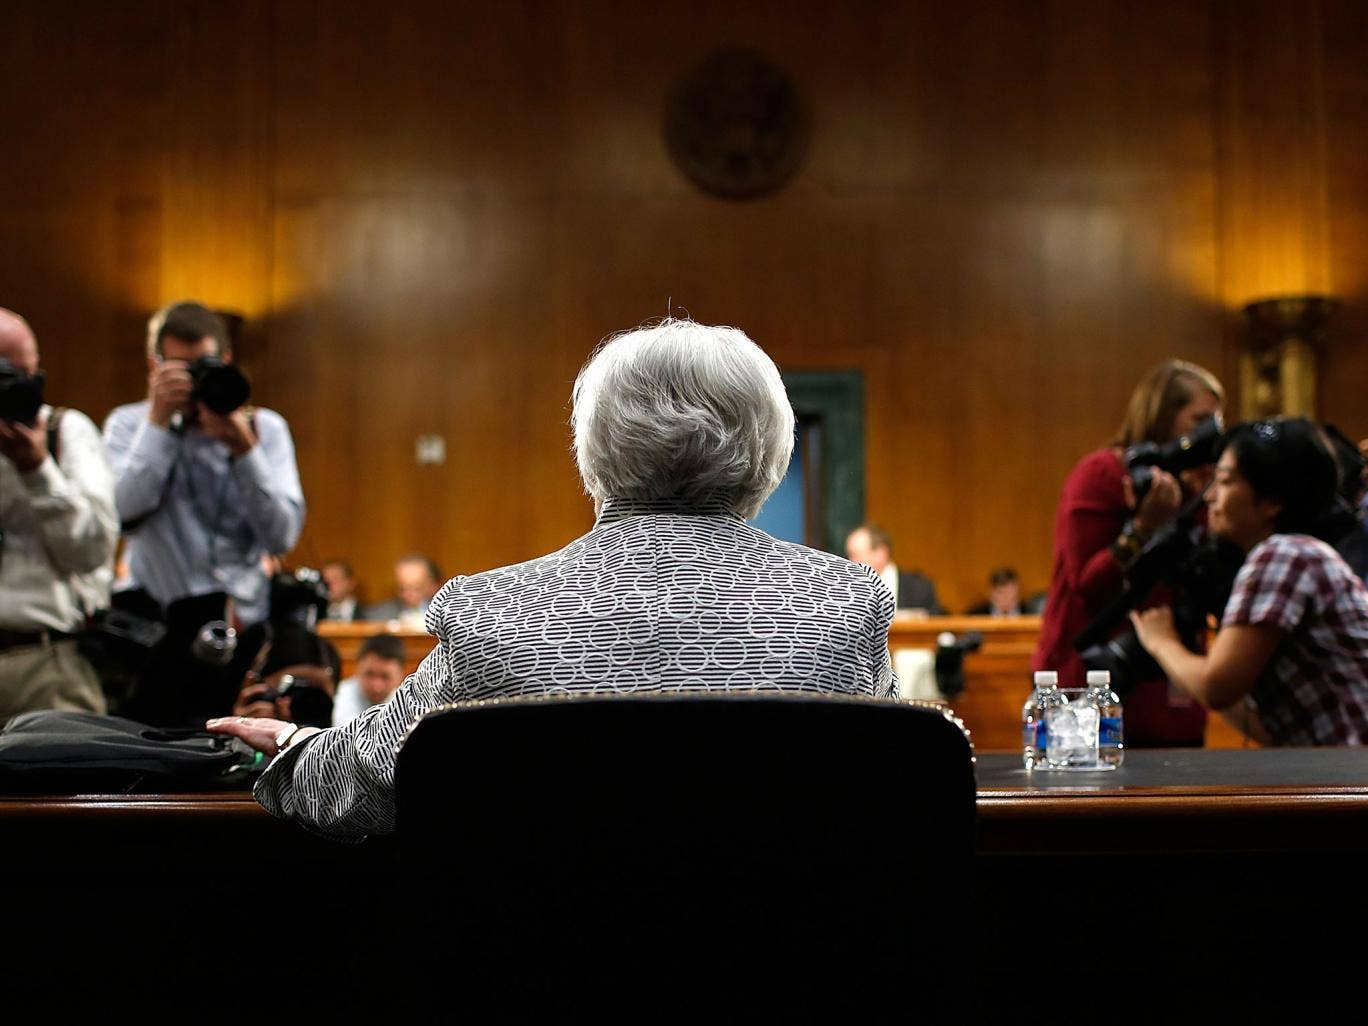 Speaking to a Senate committee hearing, the US Federal Reserve chief Janet Yellen warned of 'false dawns' for the American economy